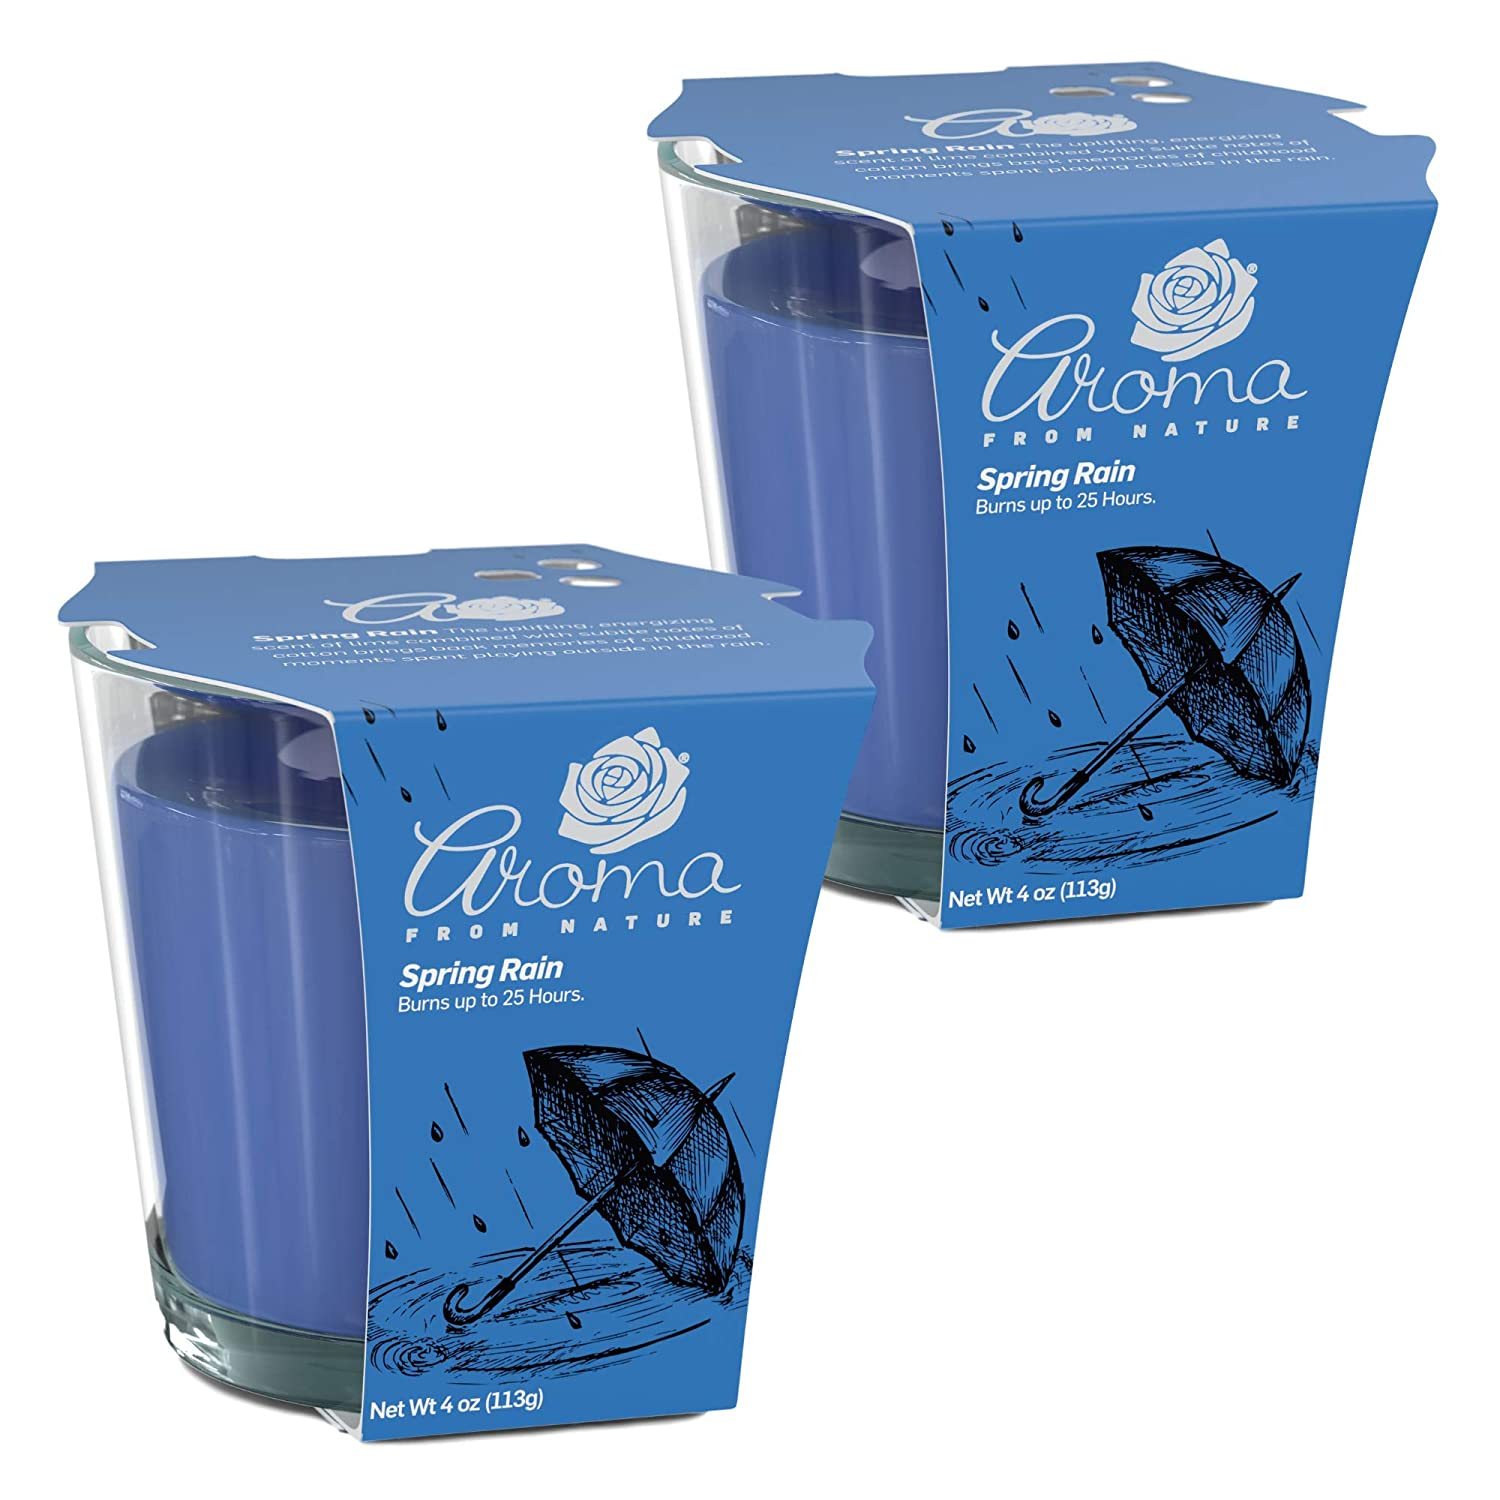 Aroma From Nature Spring Rain 4 oz AireCare Scented Candle - 2 Pack - Aromatherapy Candles - Home Fragrance - Apothecary Glass With Single Wick